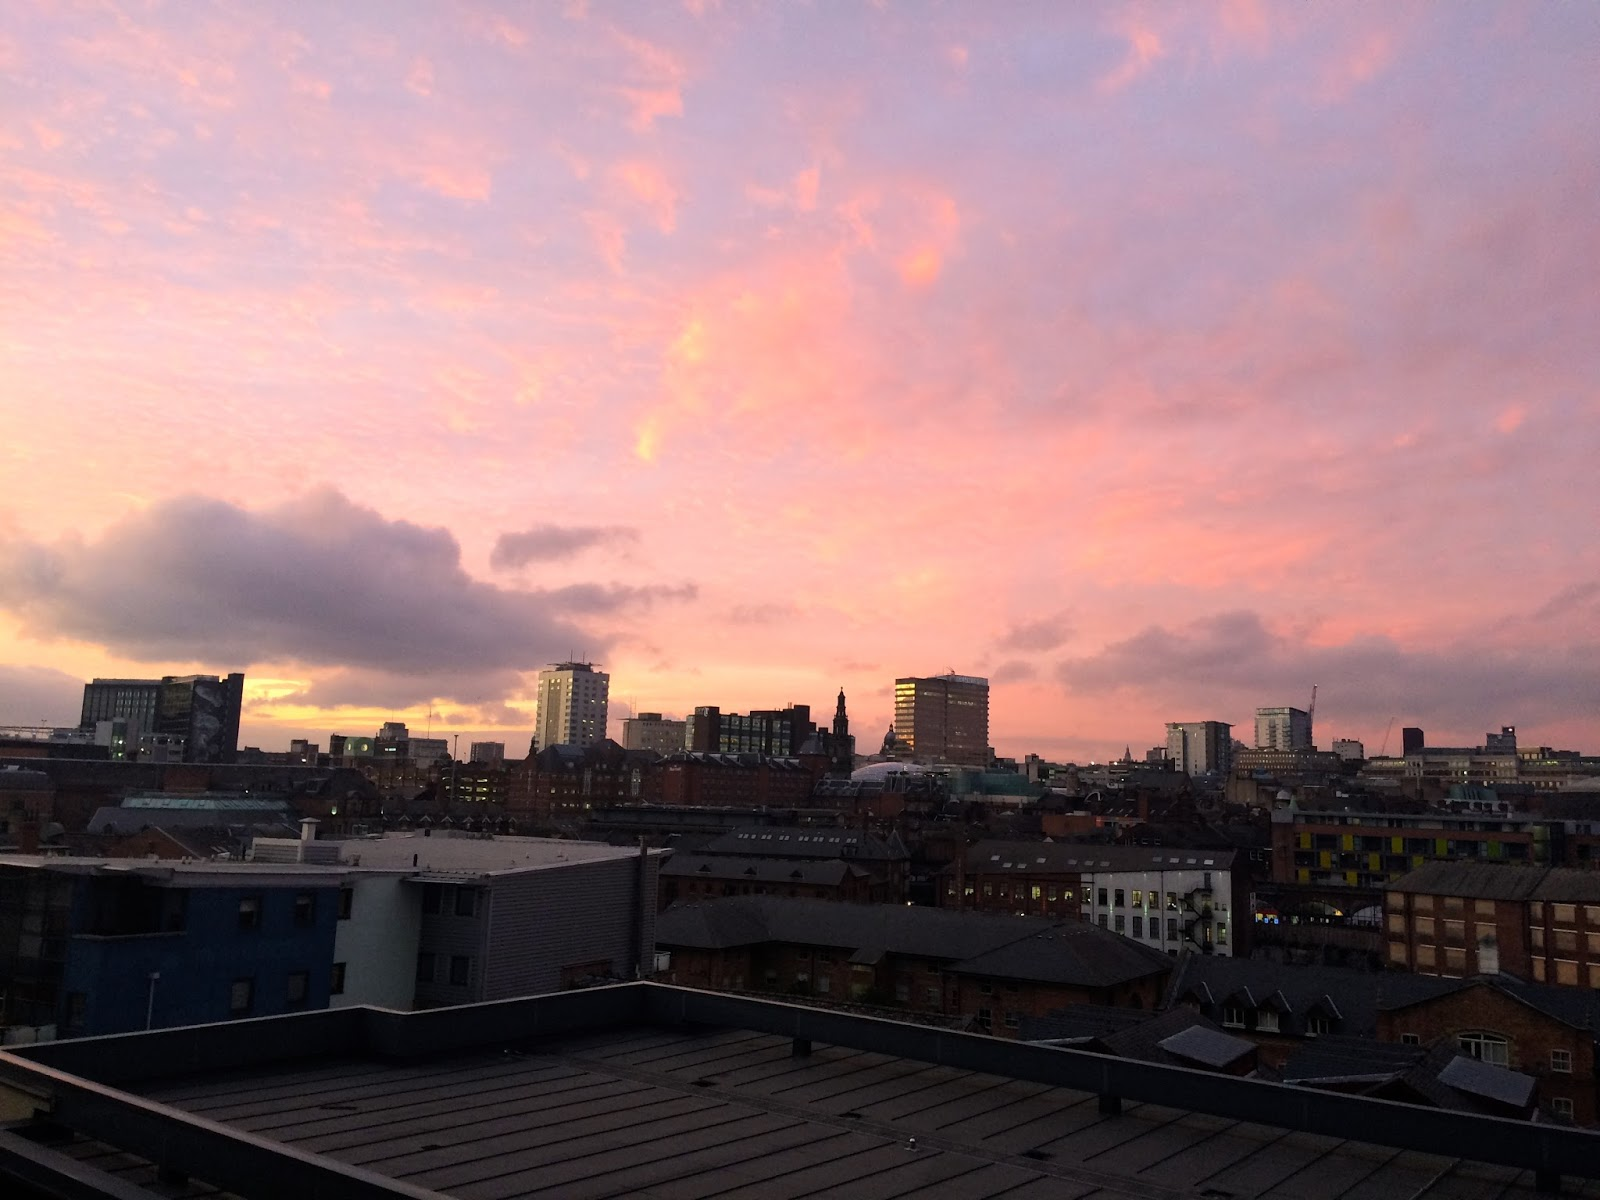 View of Leeds City skyline with sunset